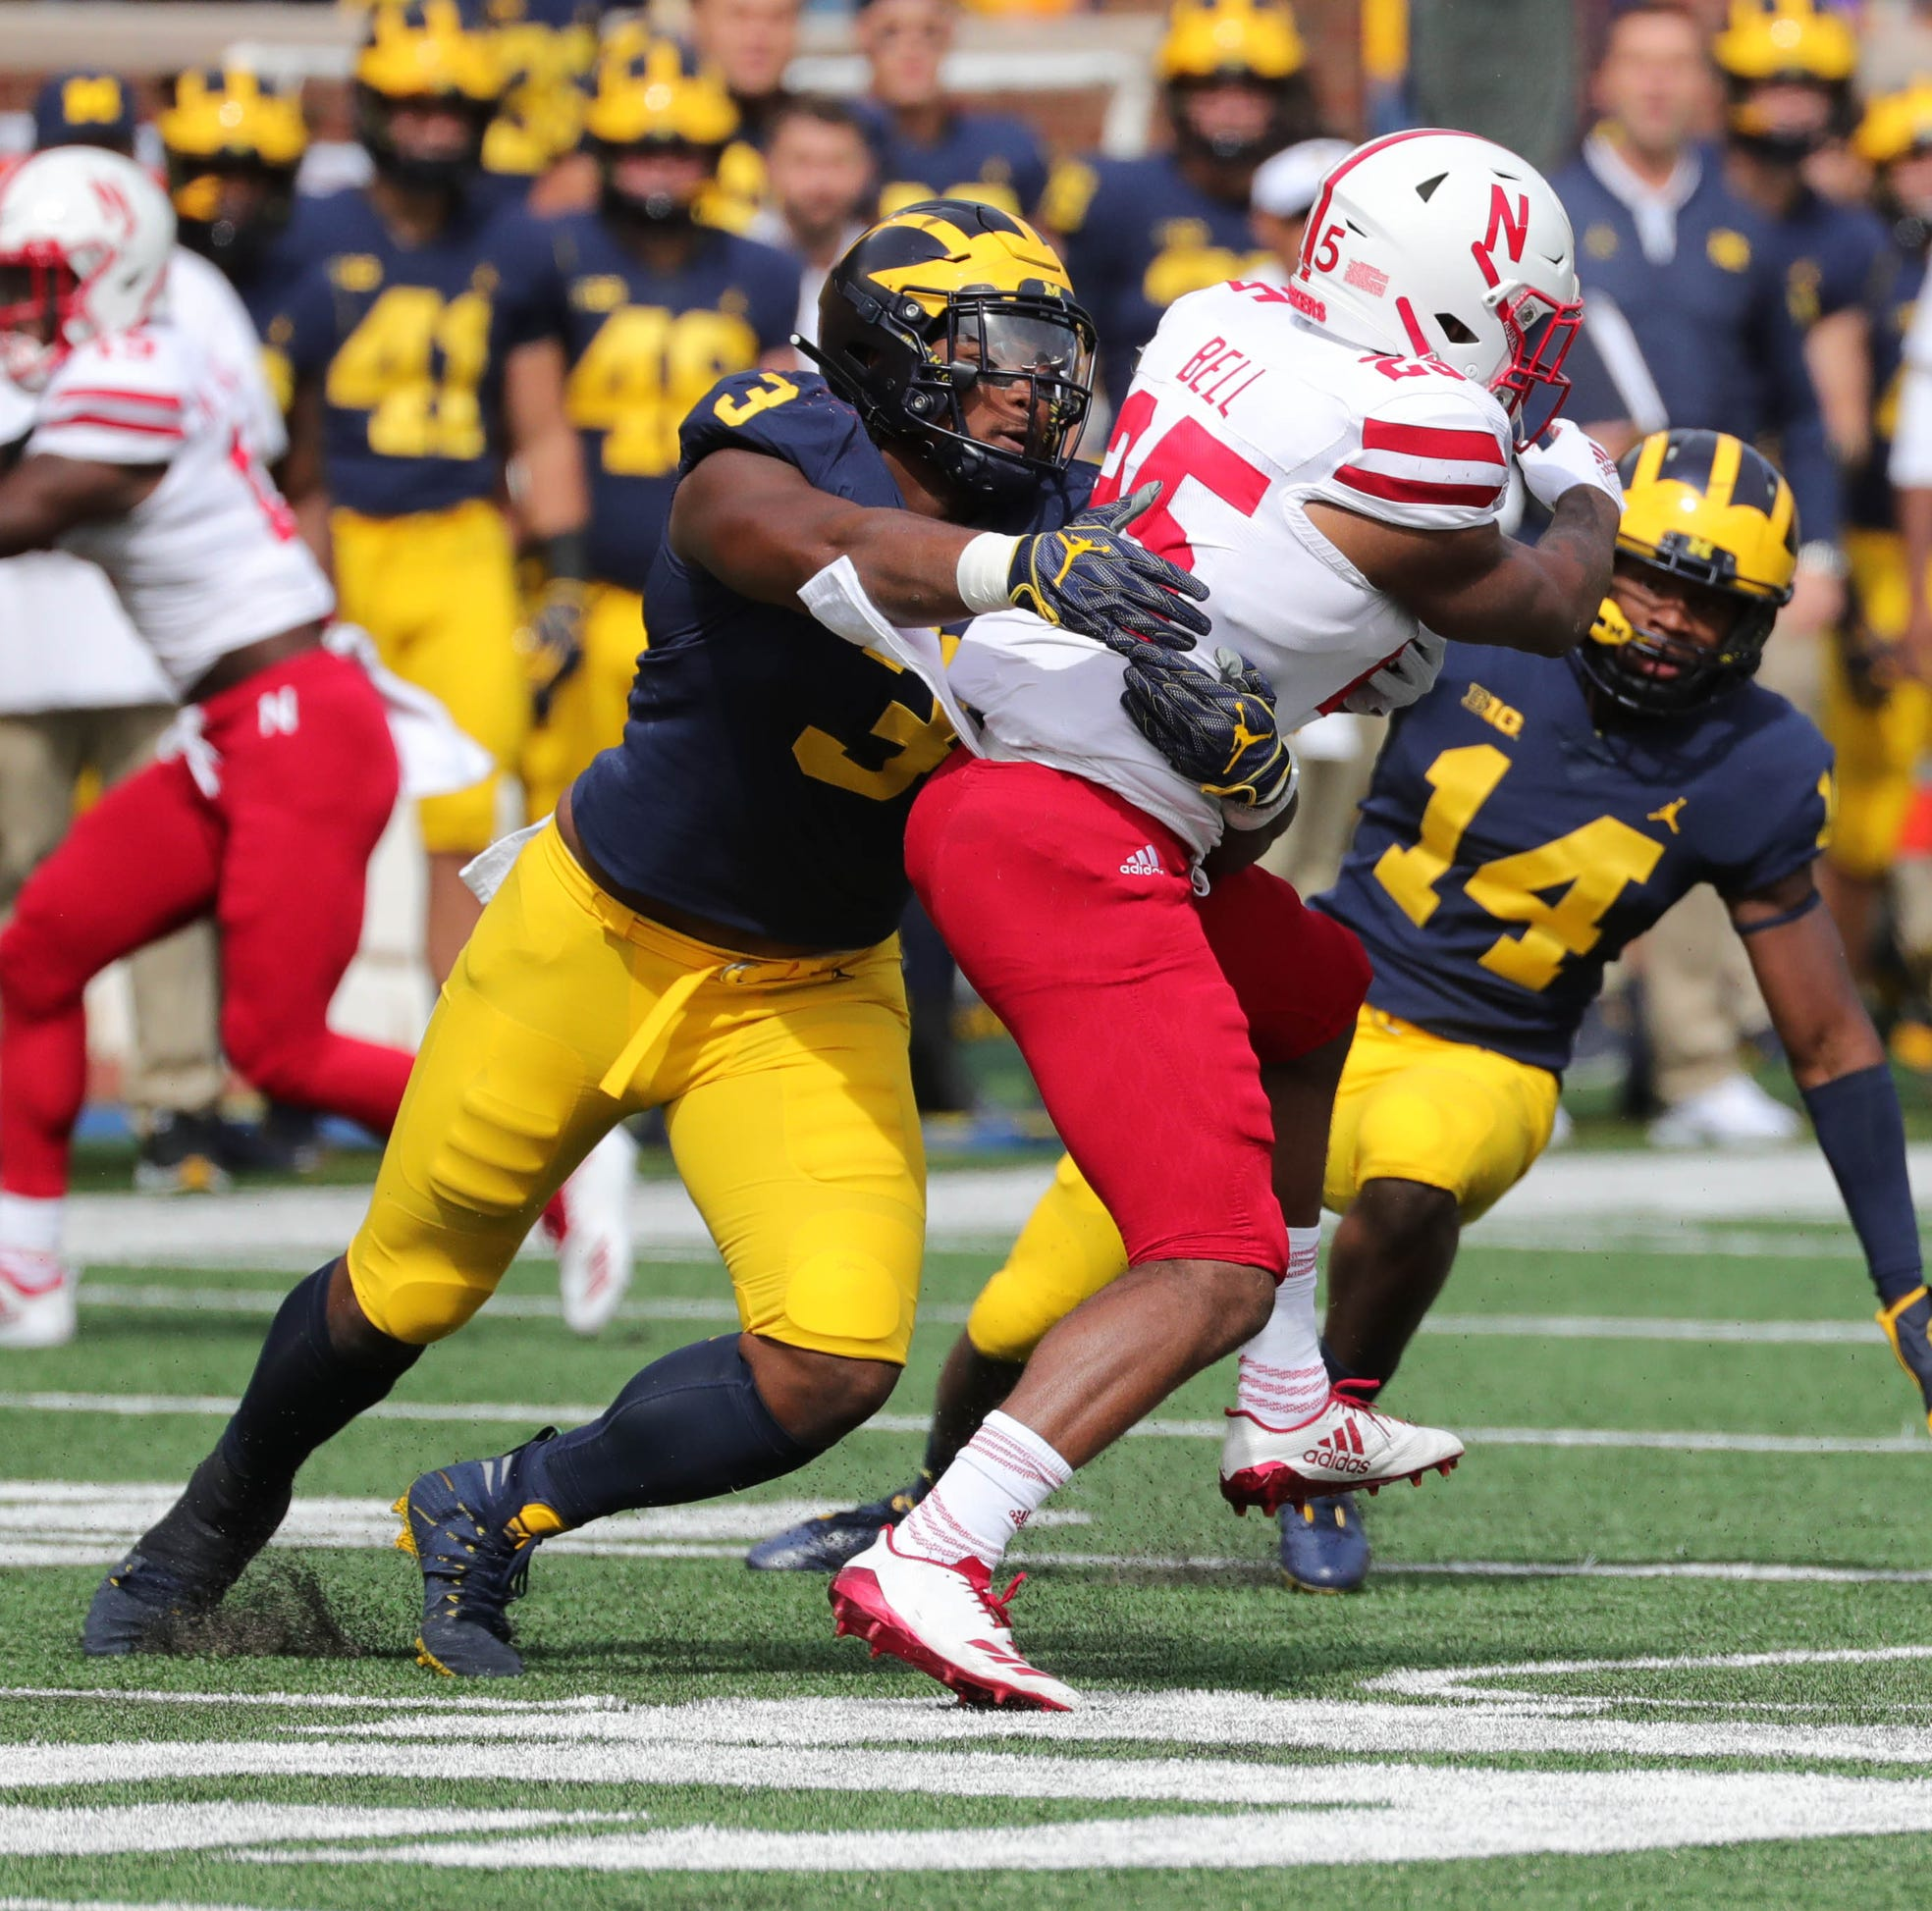 Michigan football: Time to grade their performance vs. Nebraska